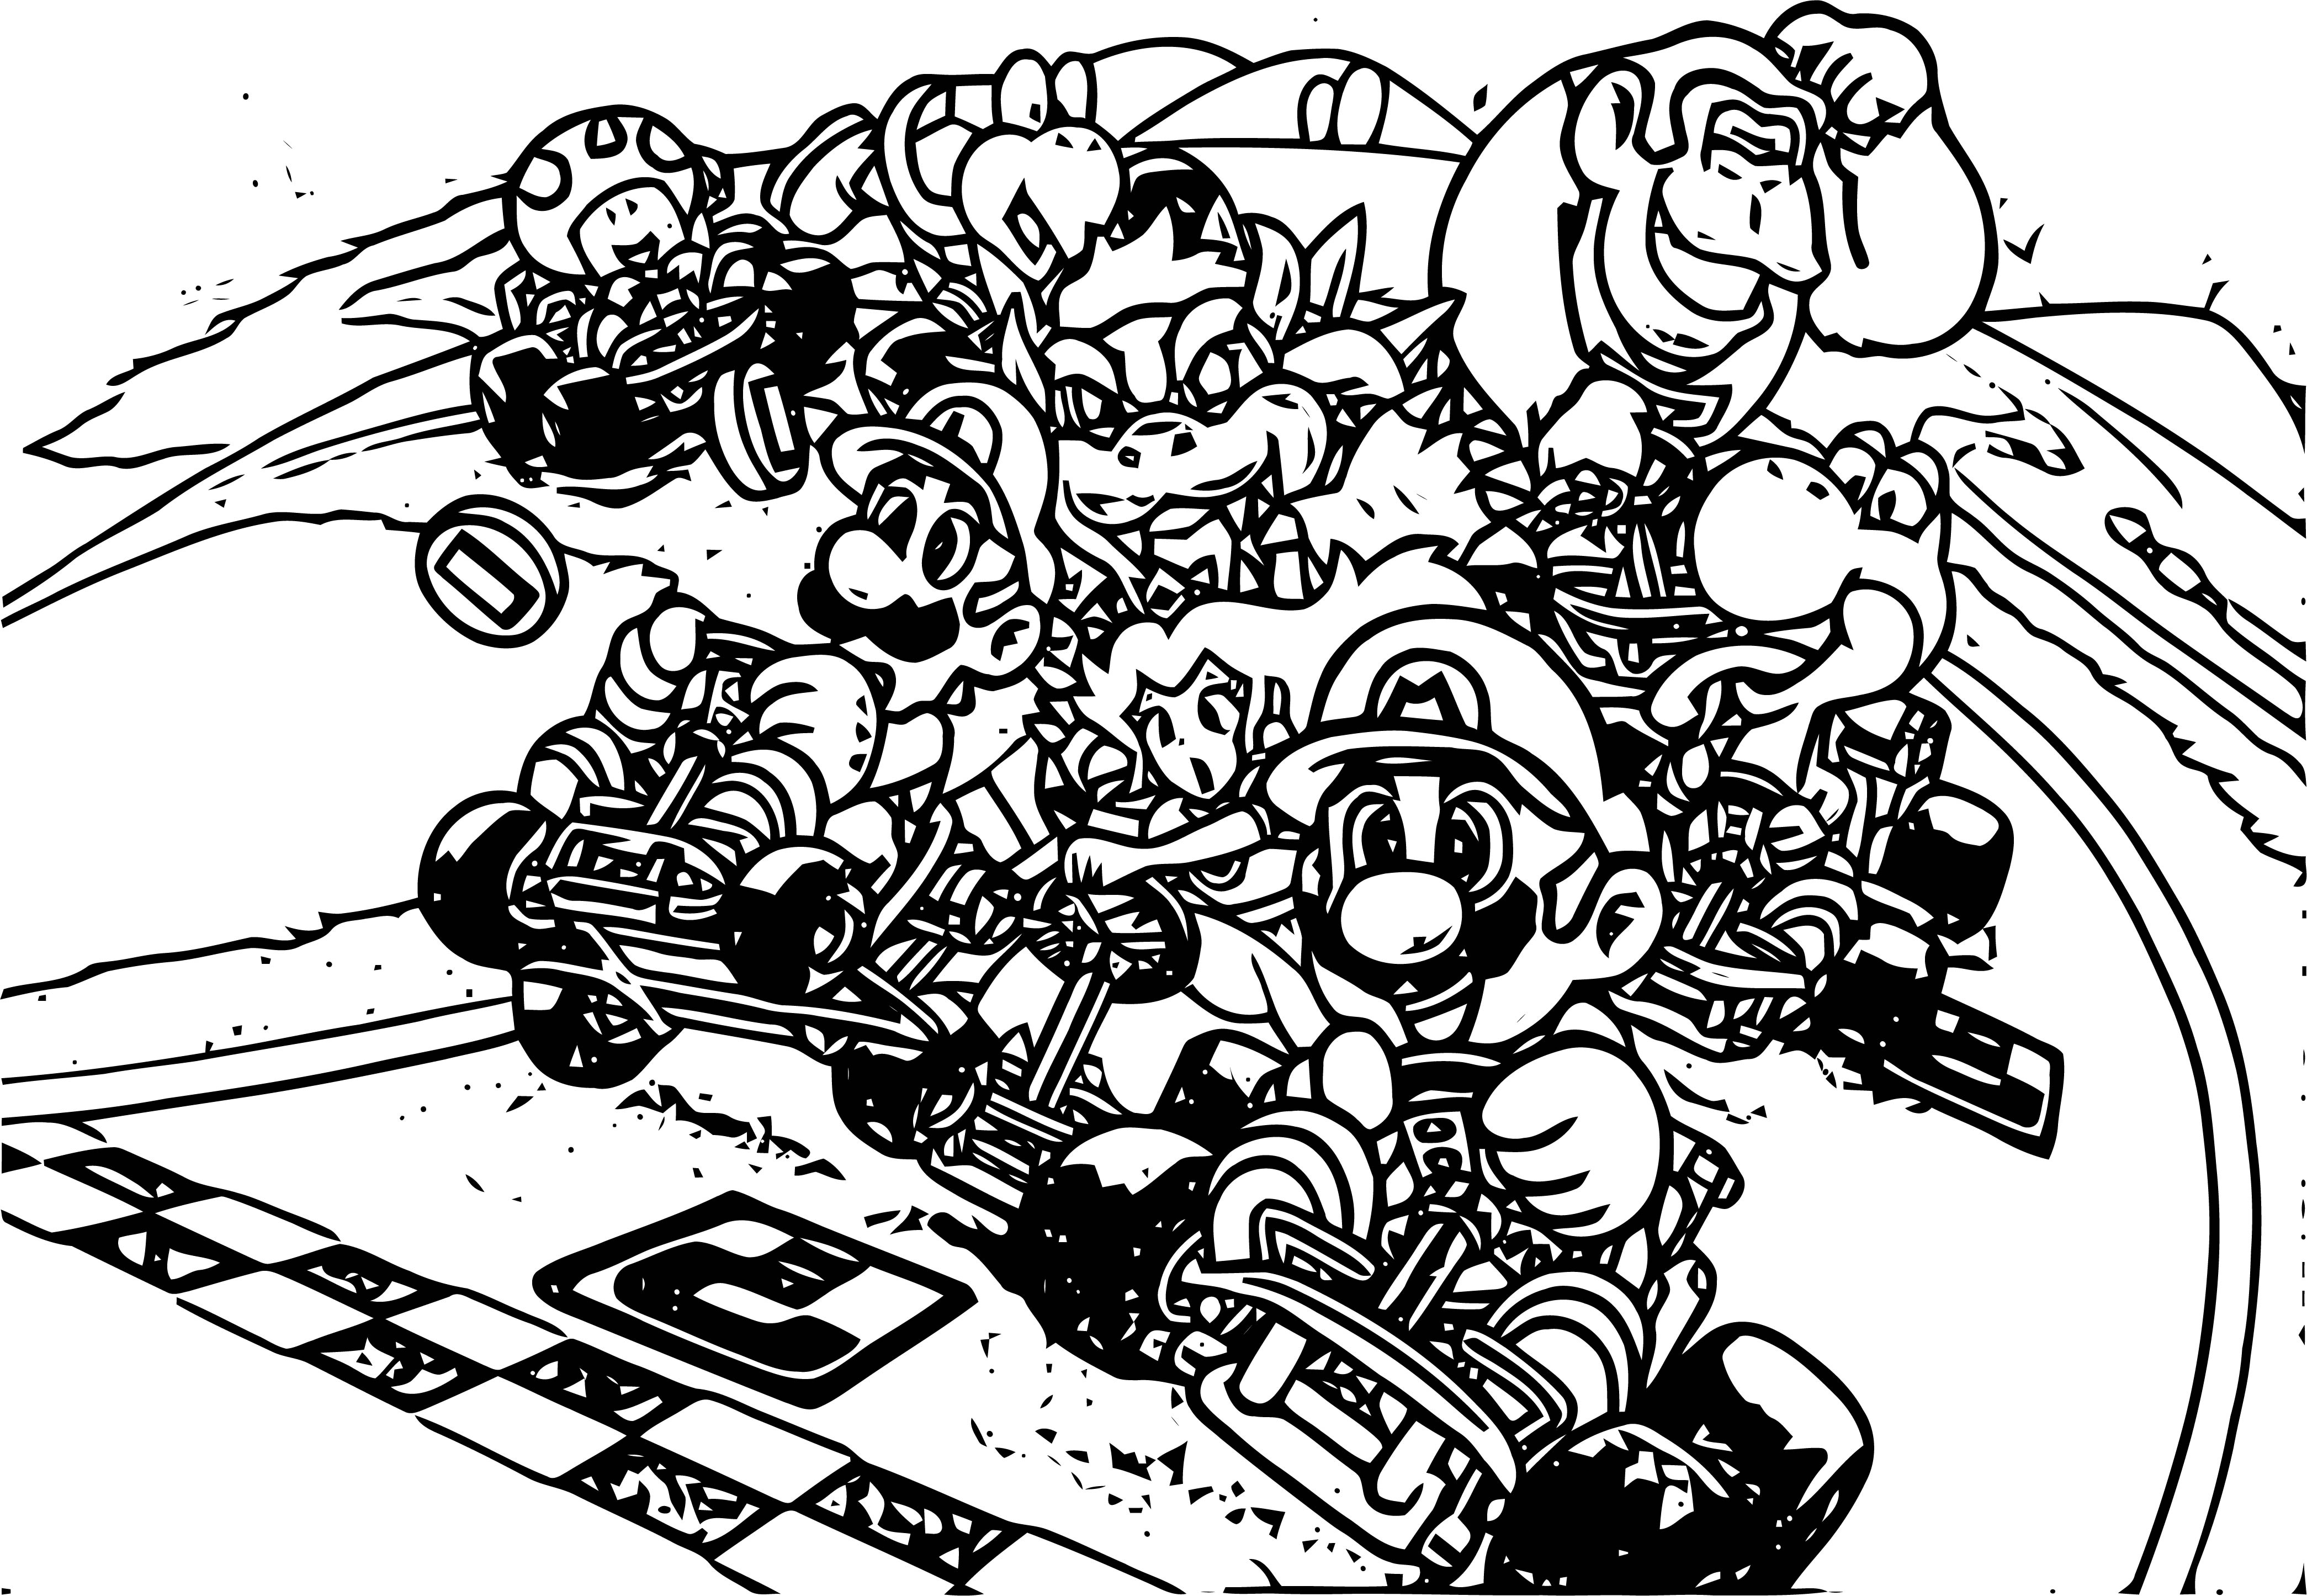 mario kart 7 coloring pages pin by mikr trimble on line art mario coloring pages 7 coloring mario kart pages